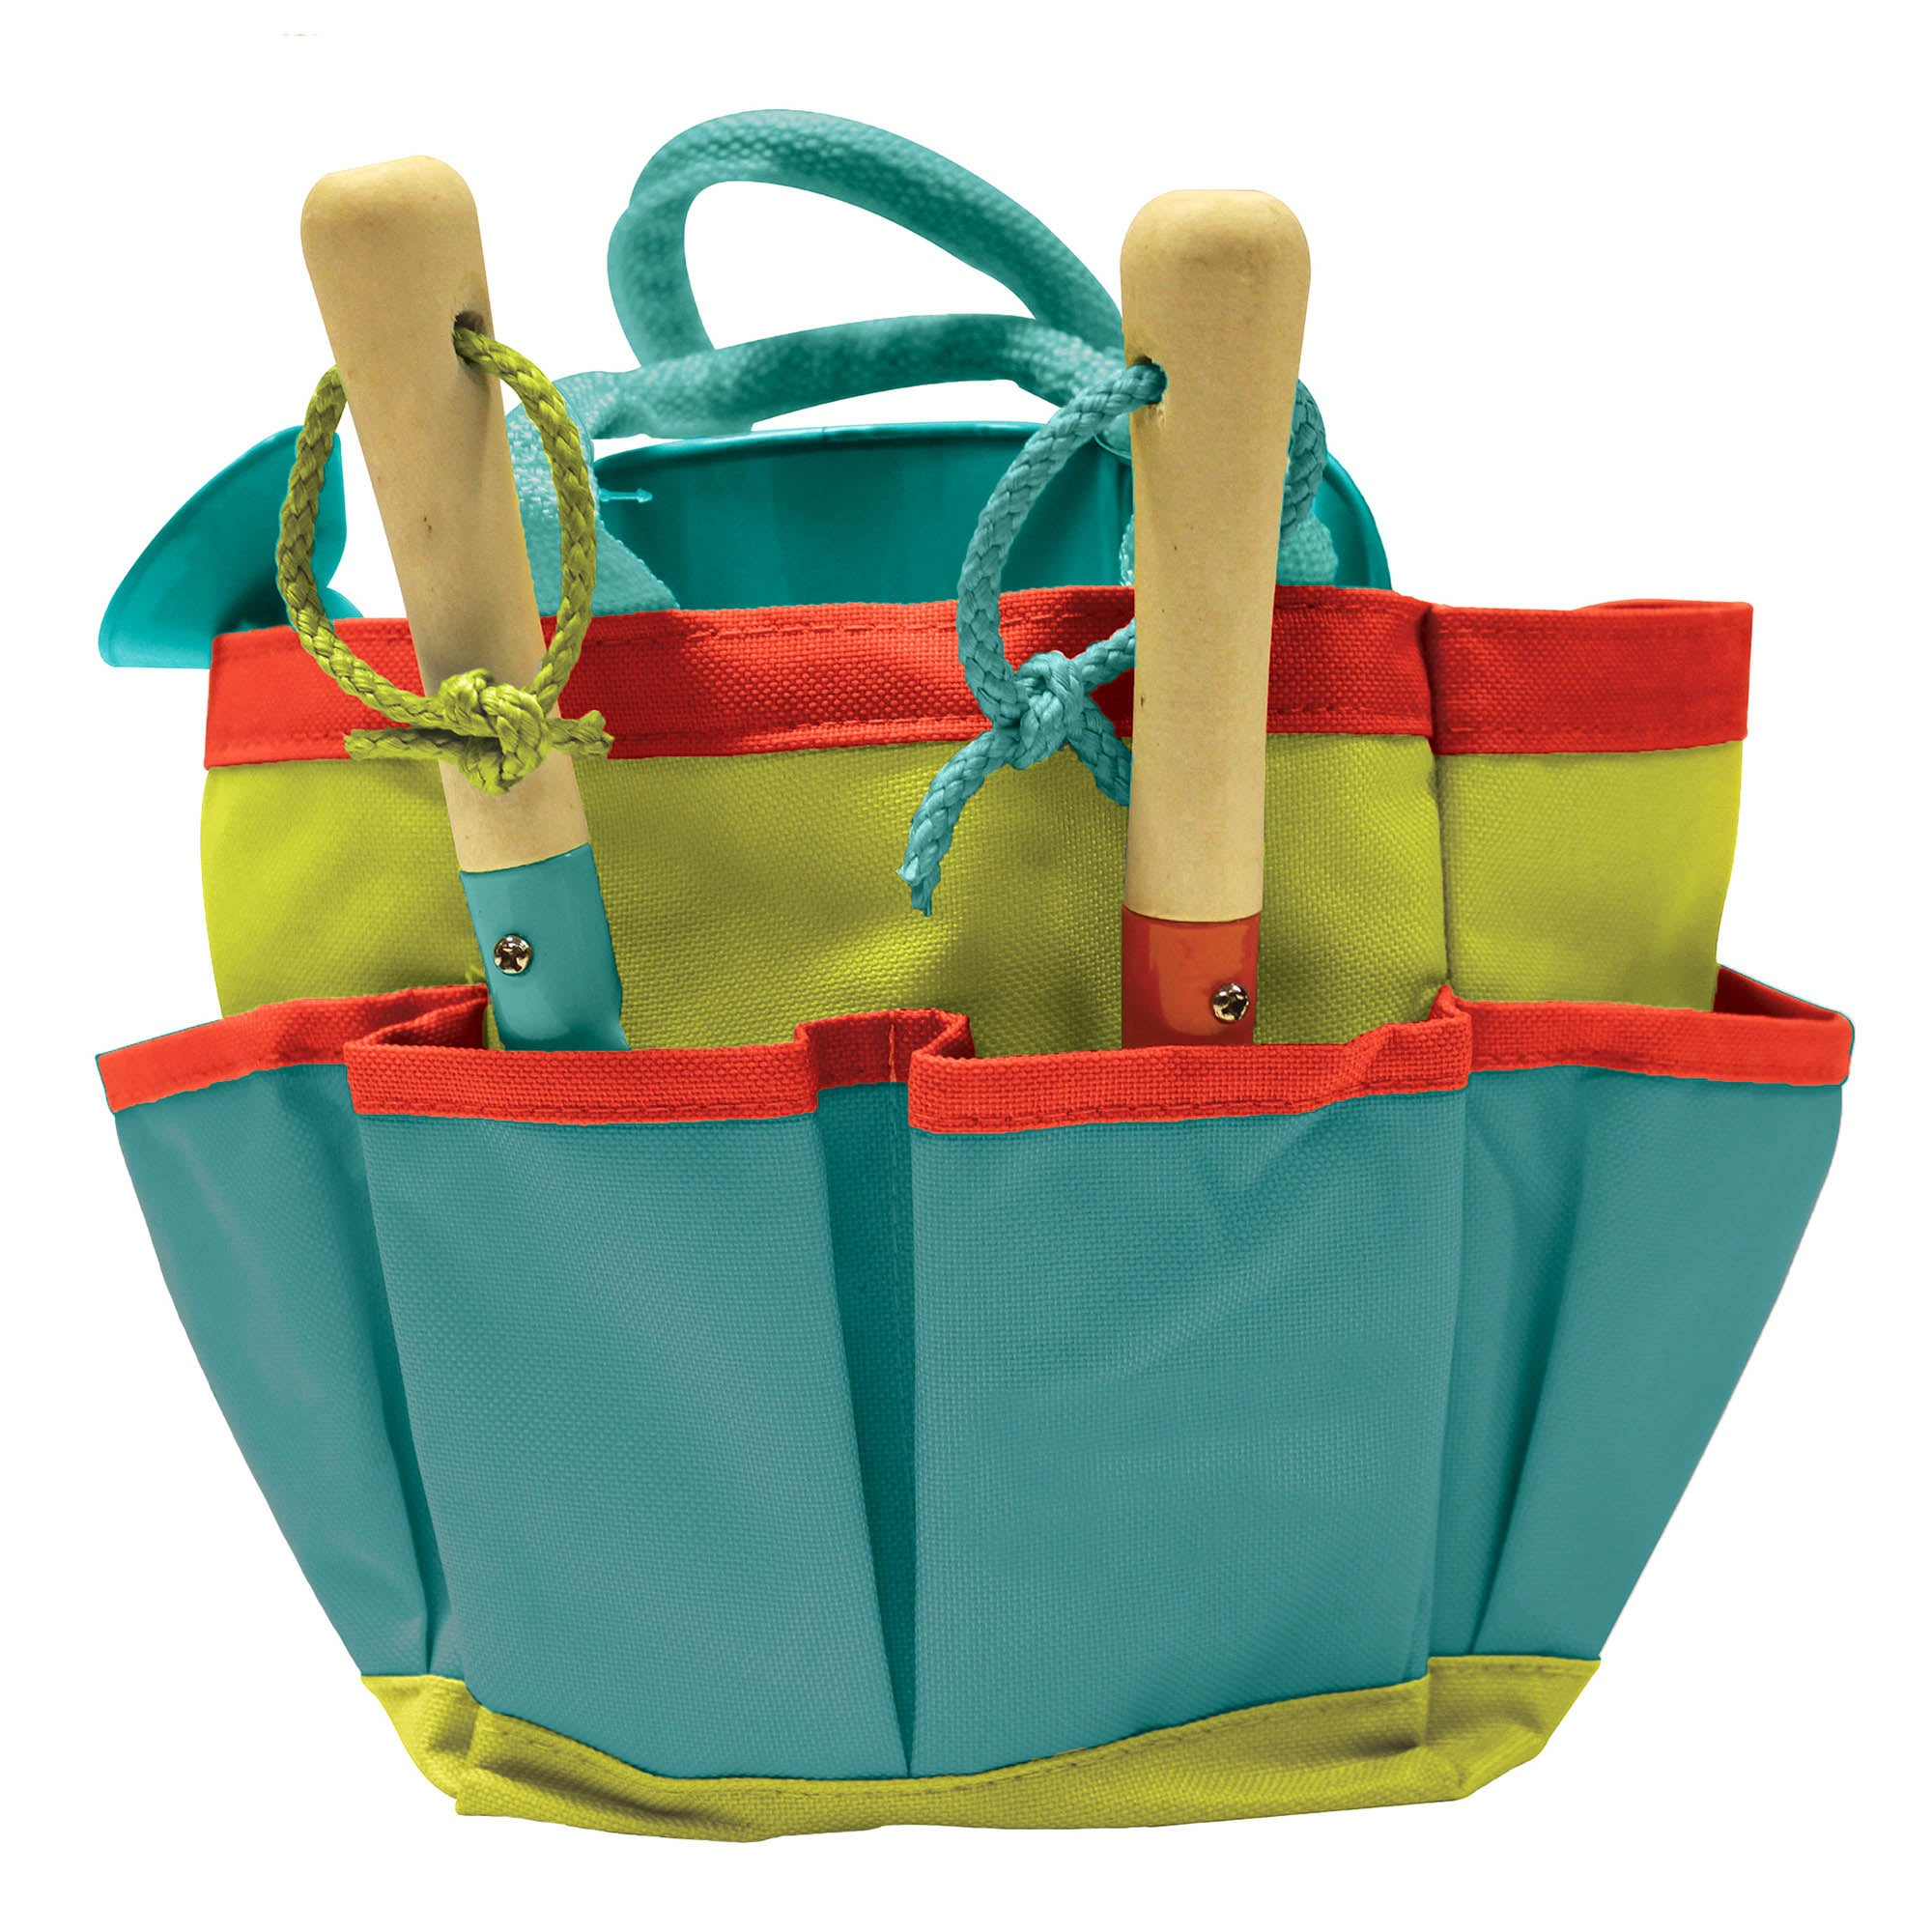 Photo of Kids garden tool bag set multi coloured